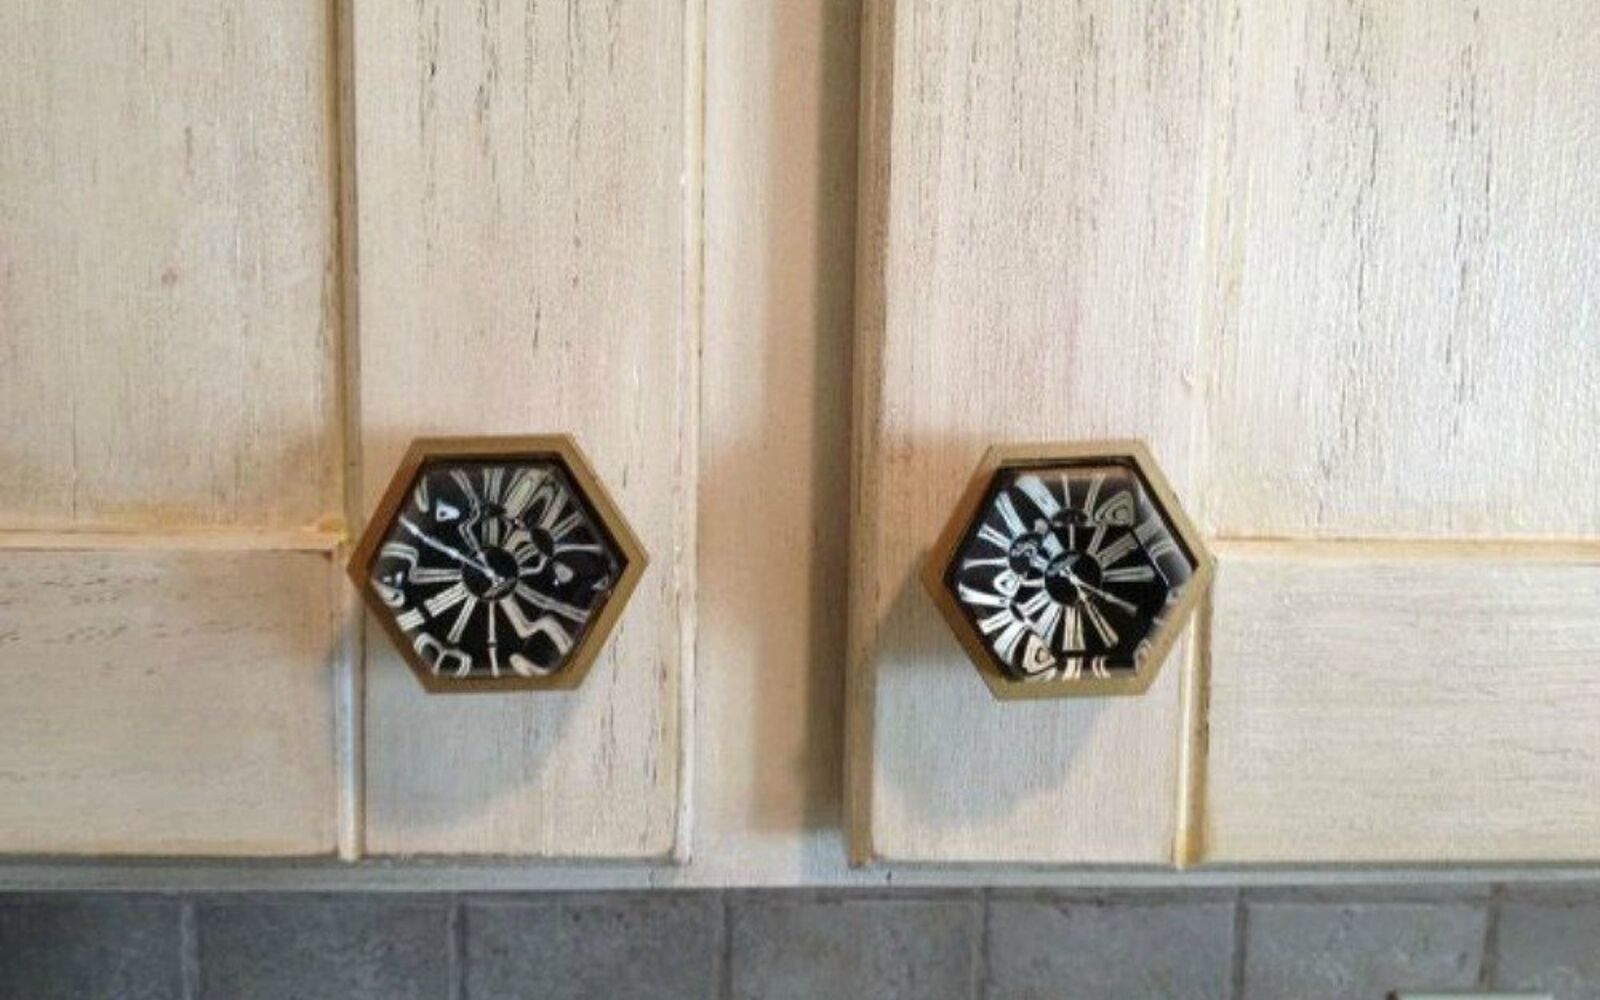 s upgrade your boring cabinets with these 11 knob ideas, kitchen cabinets, kitchen design, Style them from ceramic